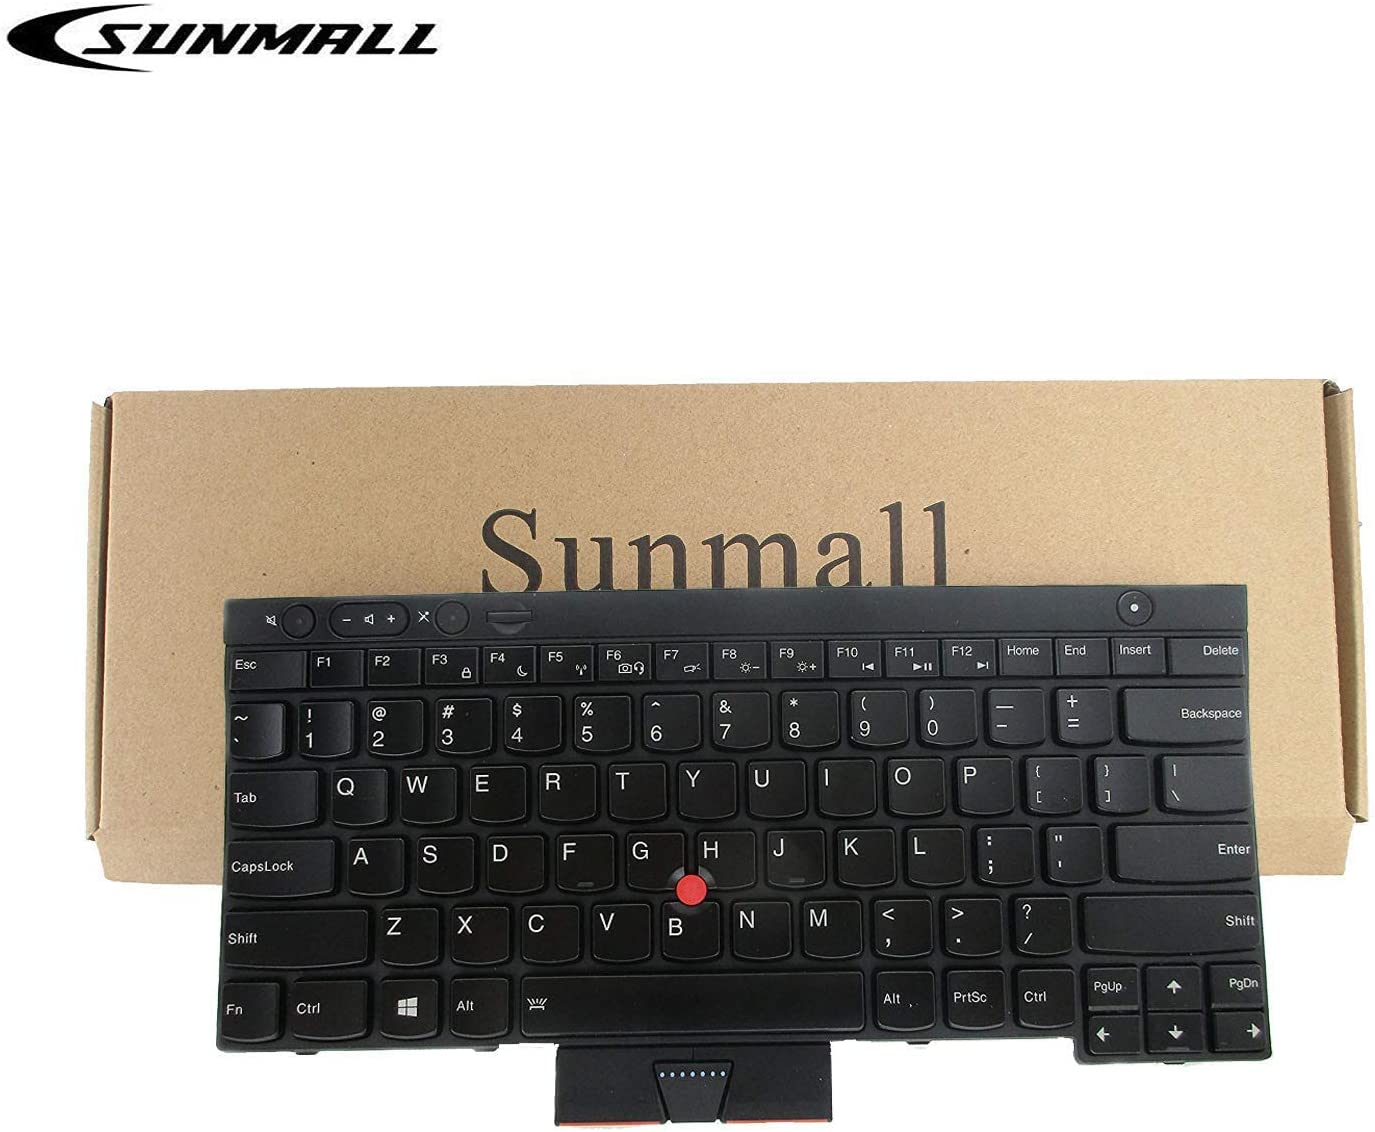 SUNMALL Keyboard Replacement with Pointer and Backlit, Compatible with Lenovo IBM ThinkPad T430 T430S T430I X230 X230T X230I T530 W530 Laptop (Not Fit T430U X230S)